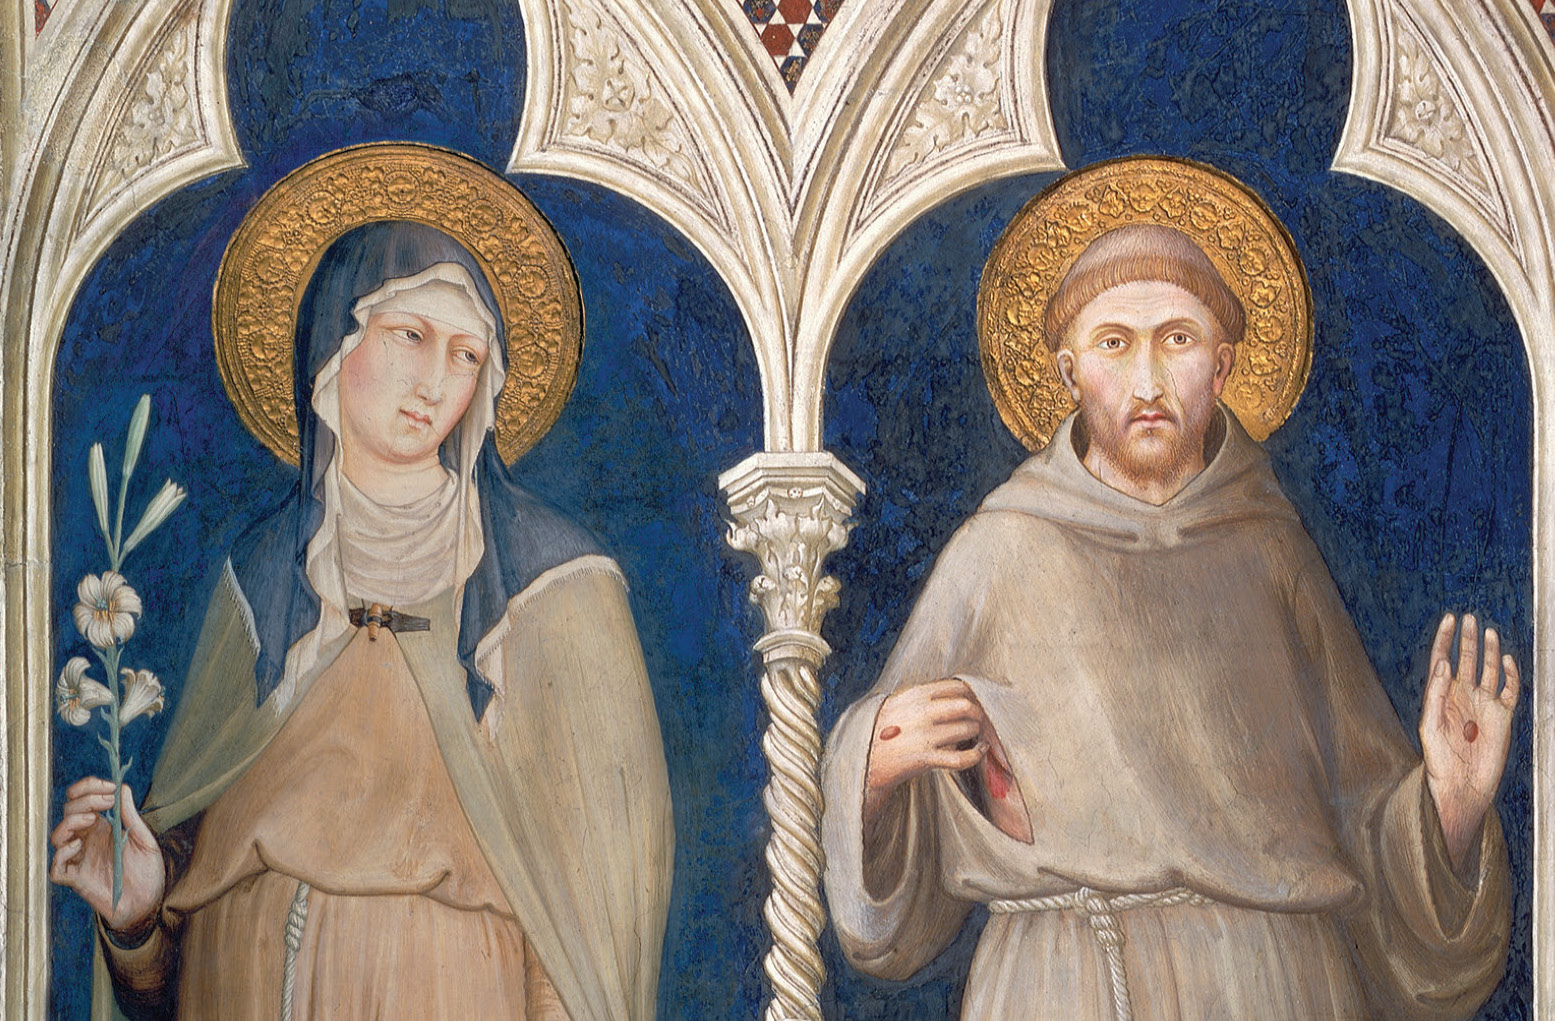 St. Francis of Assisi: 7 Books From Paraclete Press